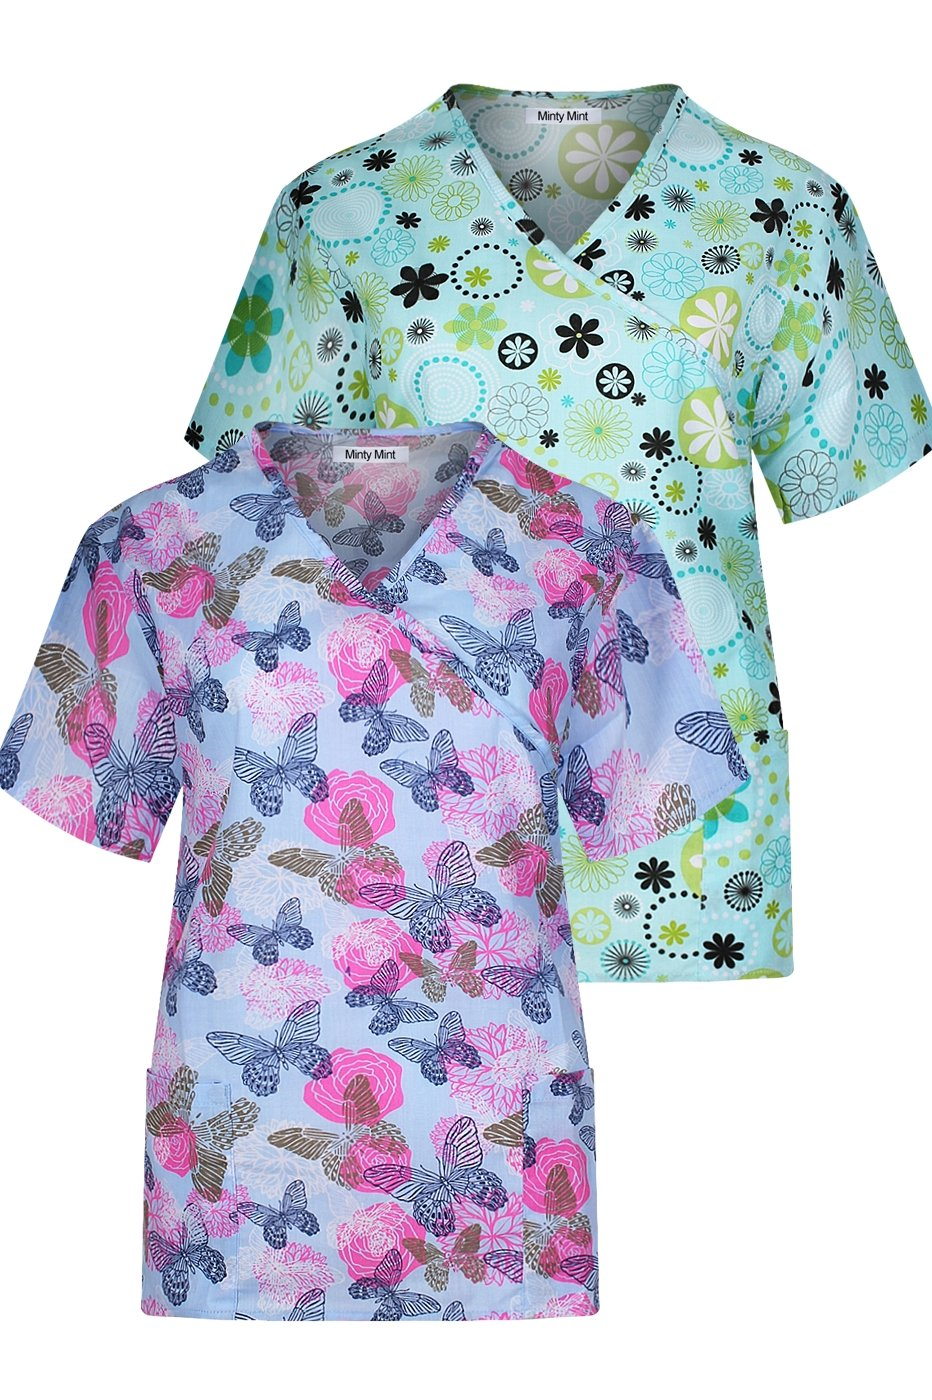 Minty Mint Women's Medical Scrub Set with Printed Wrap Top Multi Pack Blue Green XS